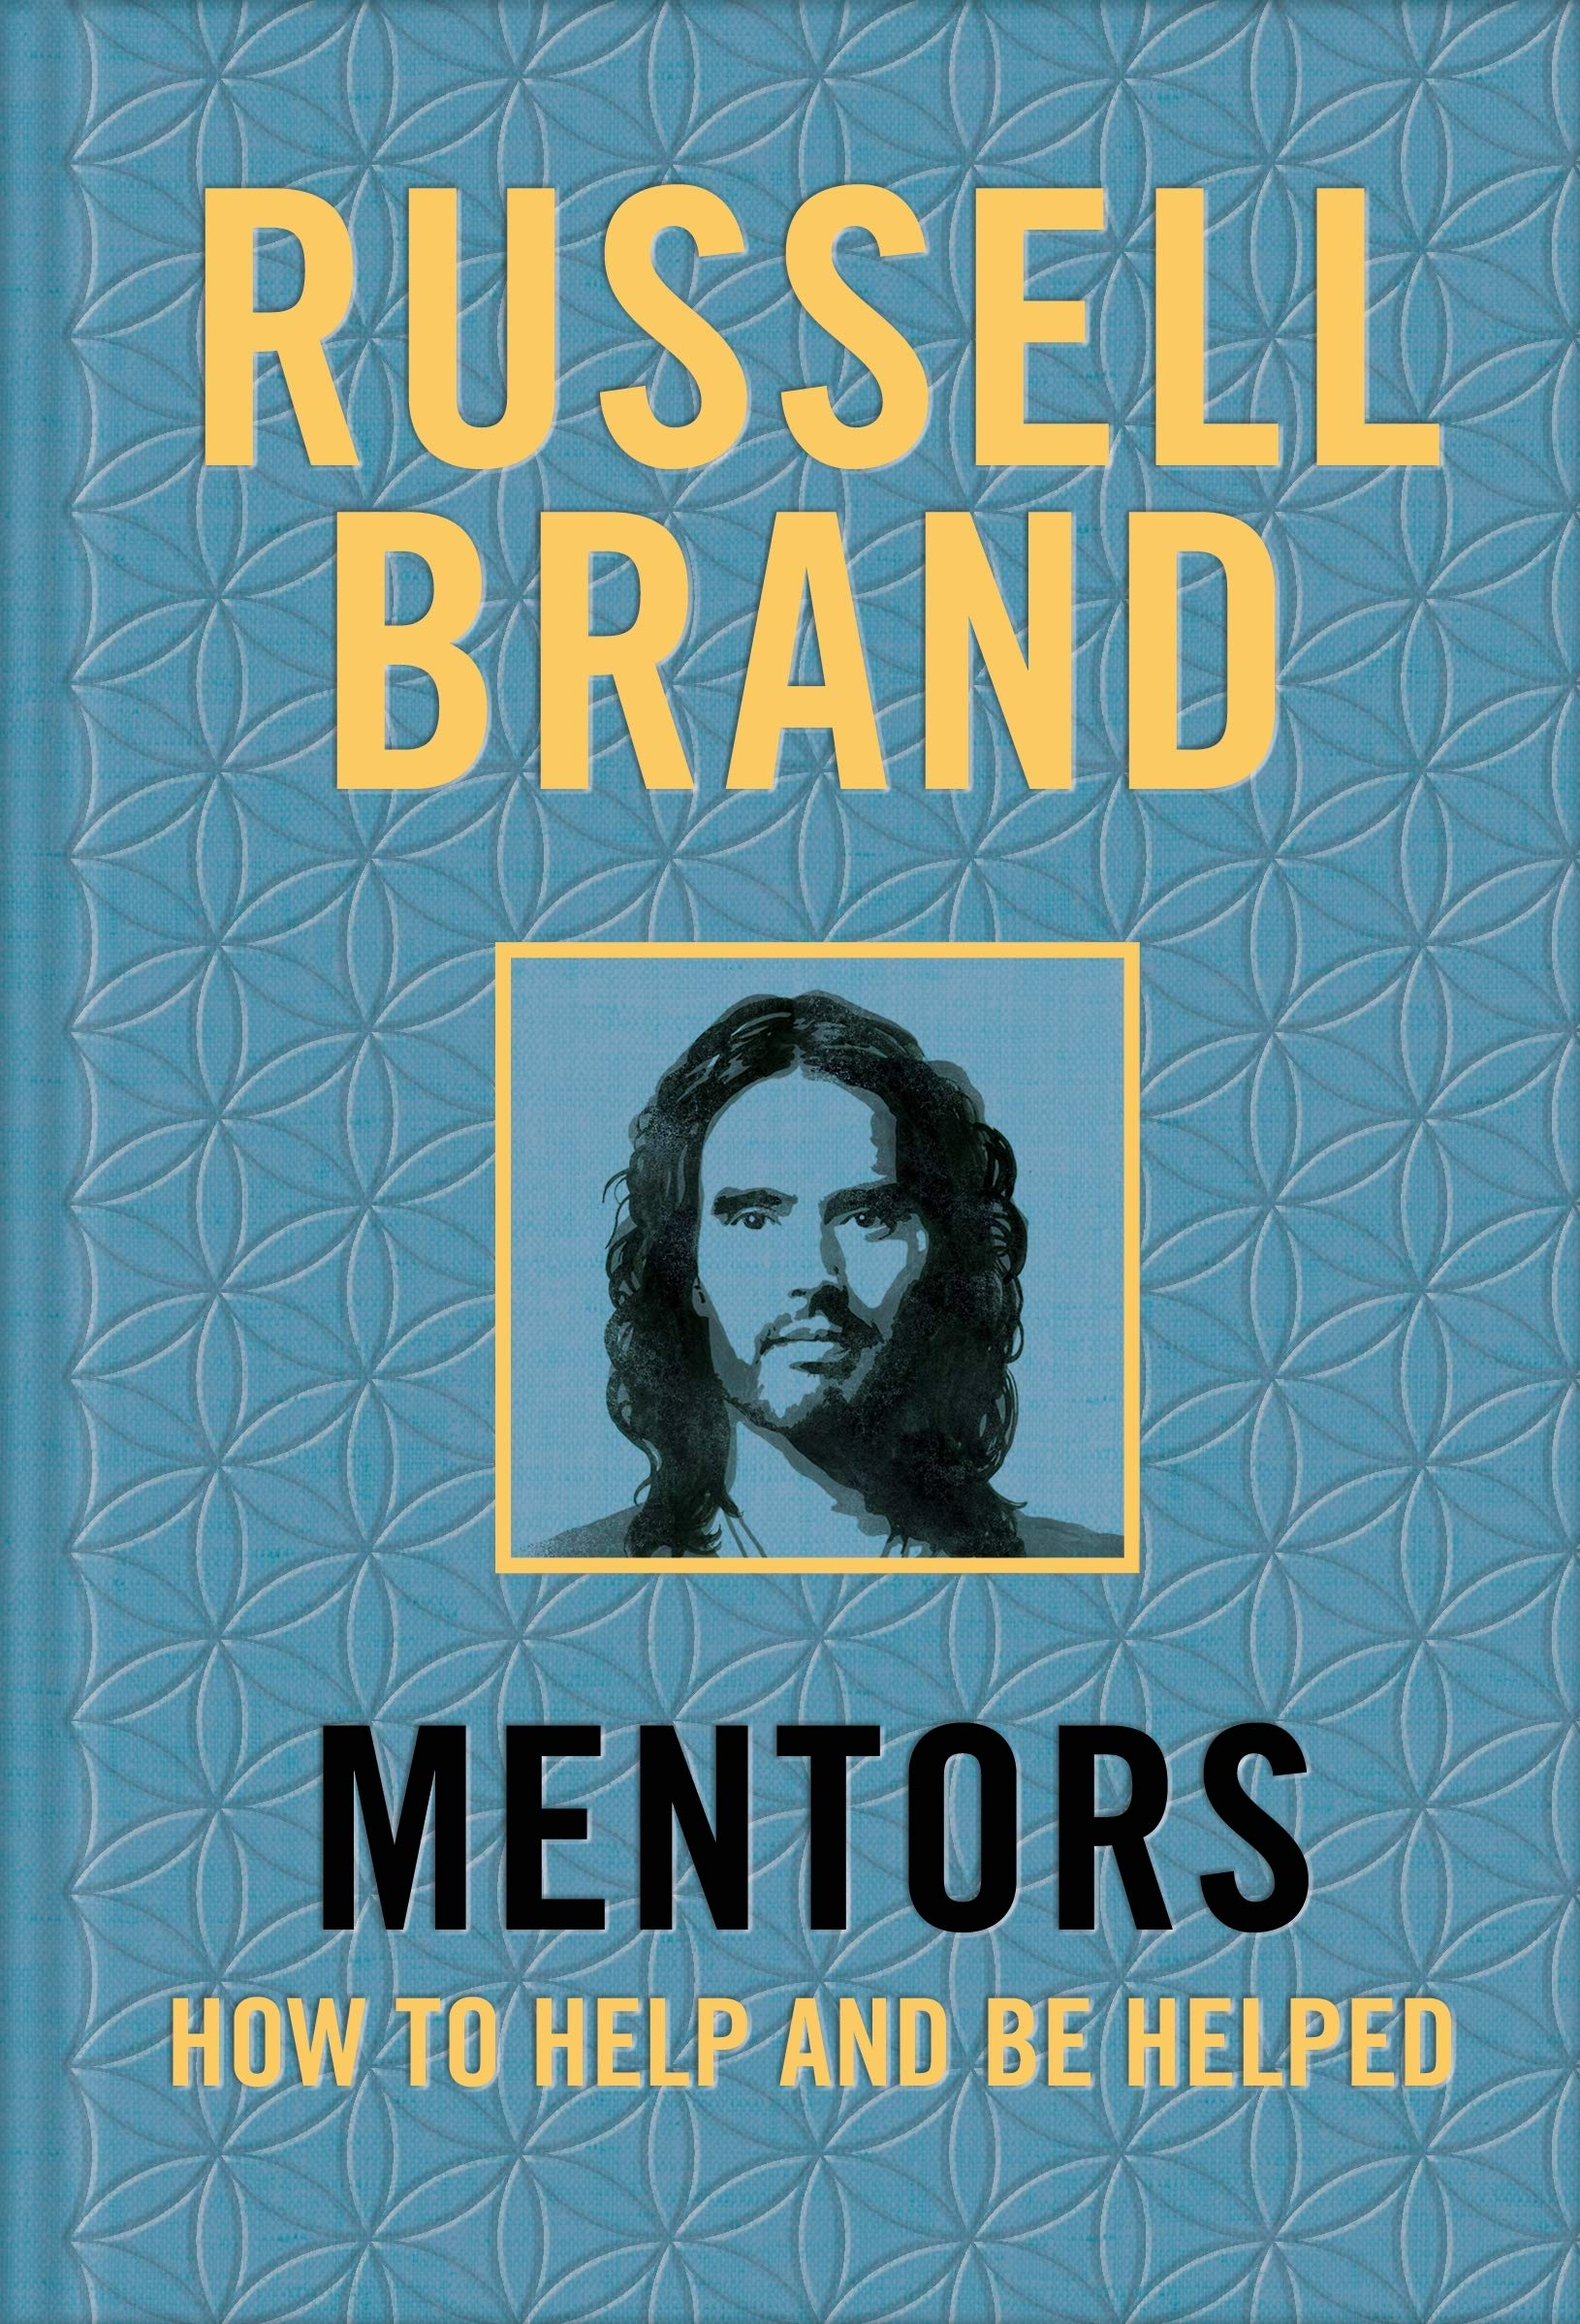 Mentors: How to Help and be Helped por Russell Brand